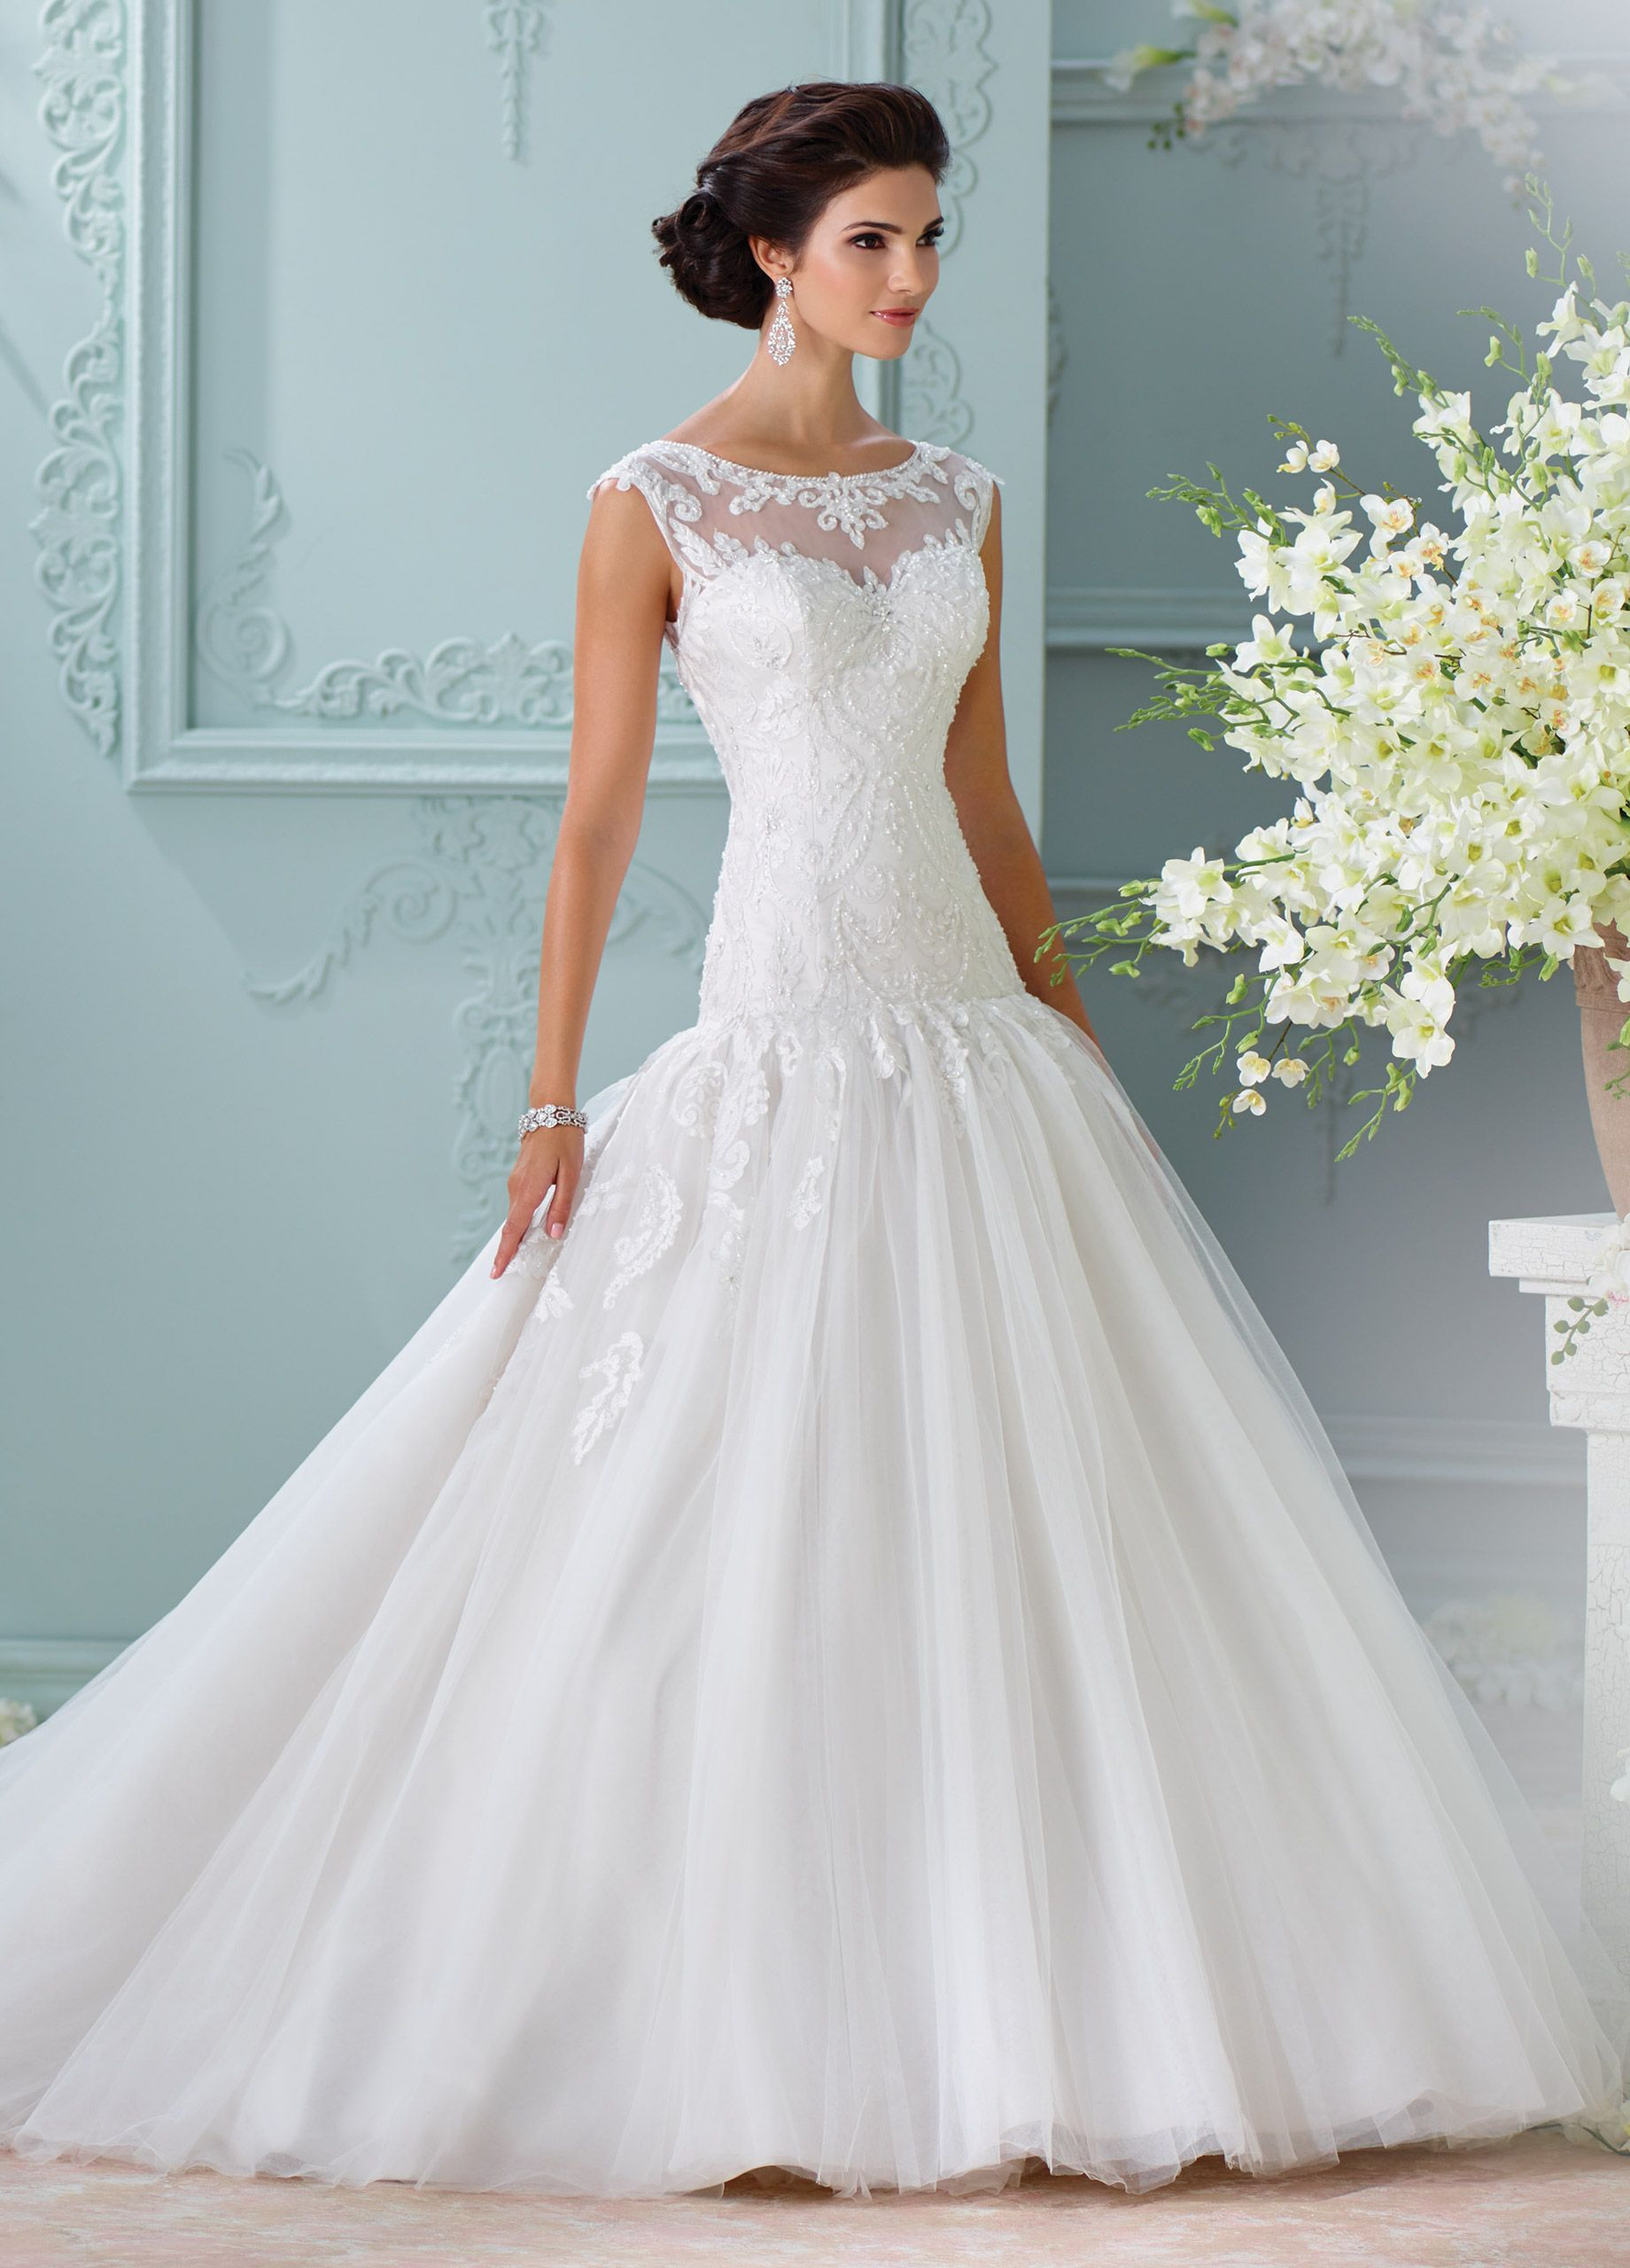 Embroidered Lace Cap Sleeve Ball Gown Wedding Dress-116226 Chiara ...